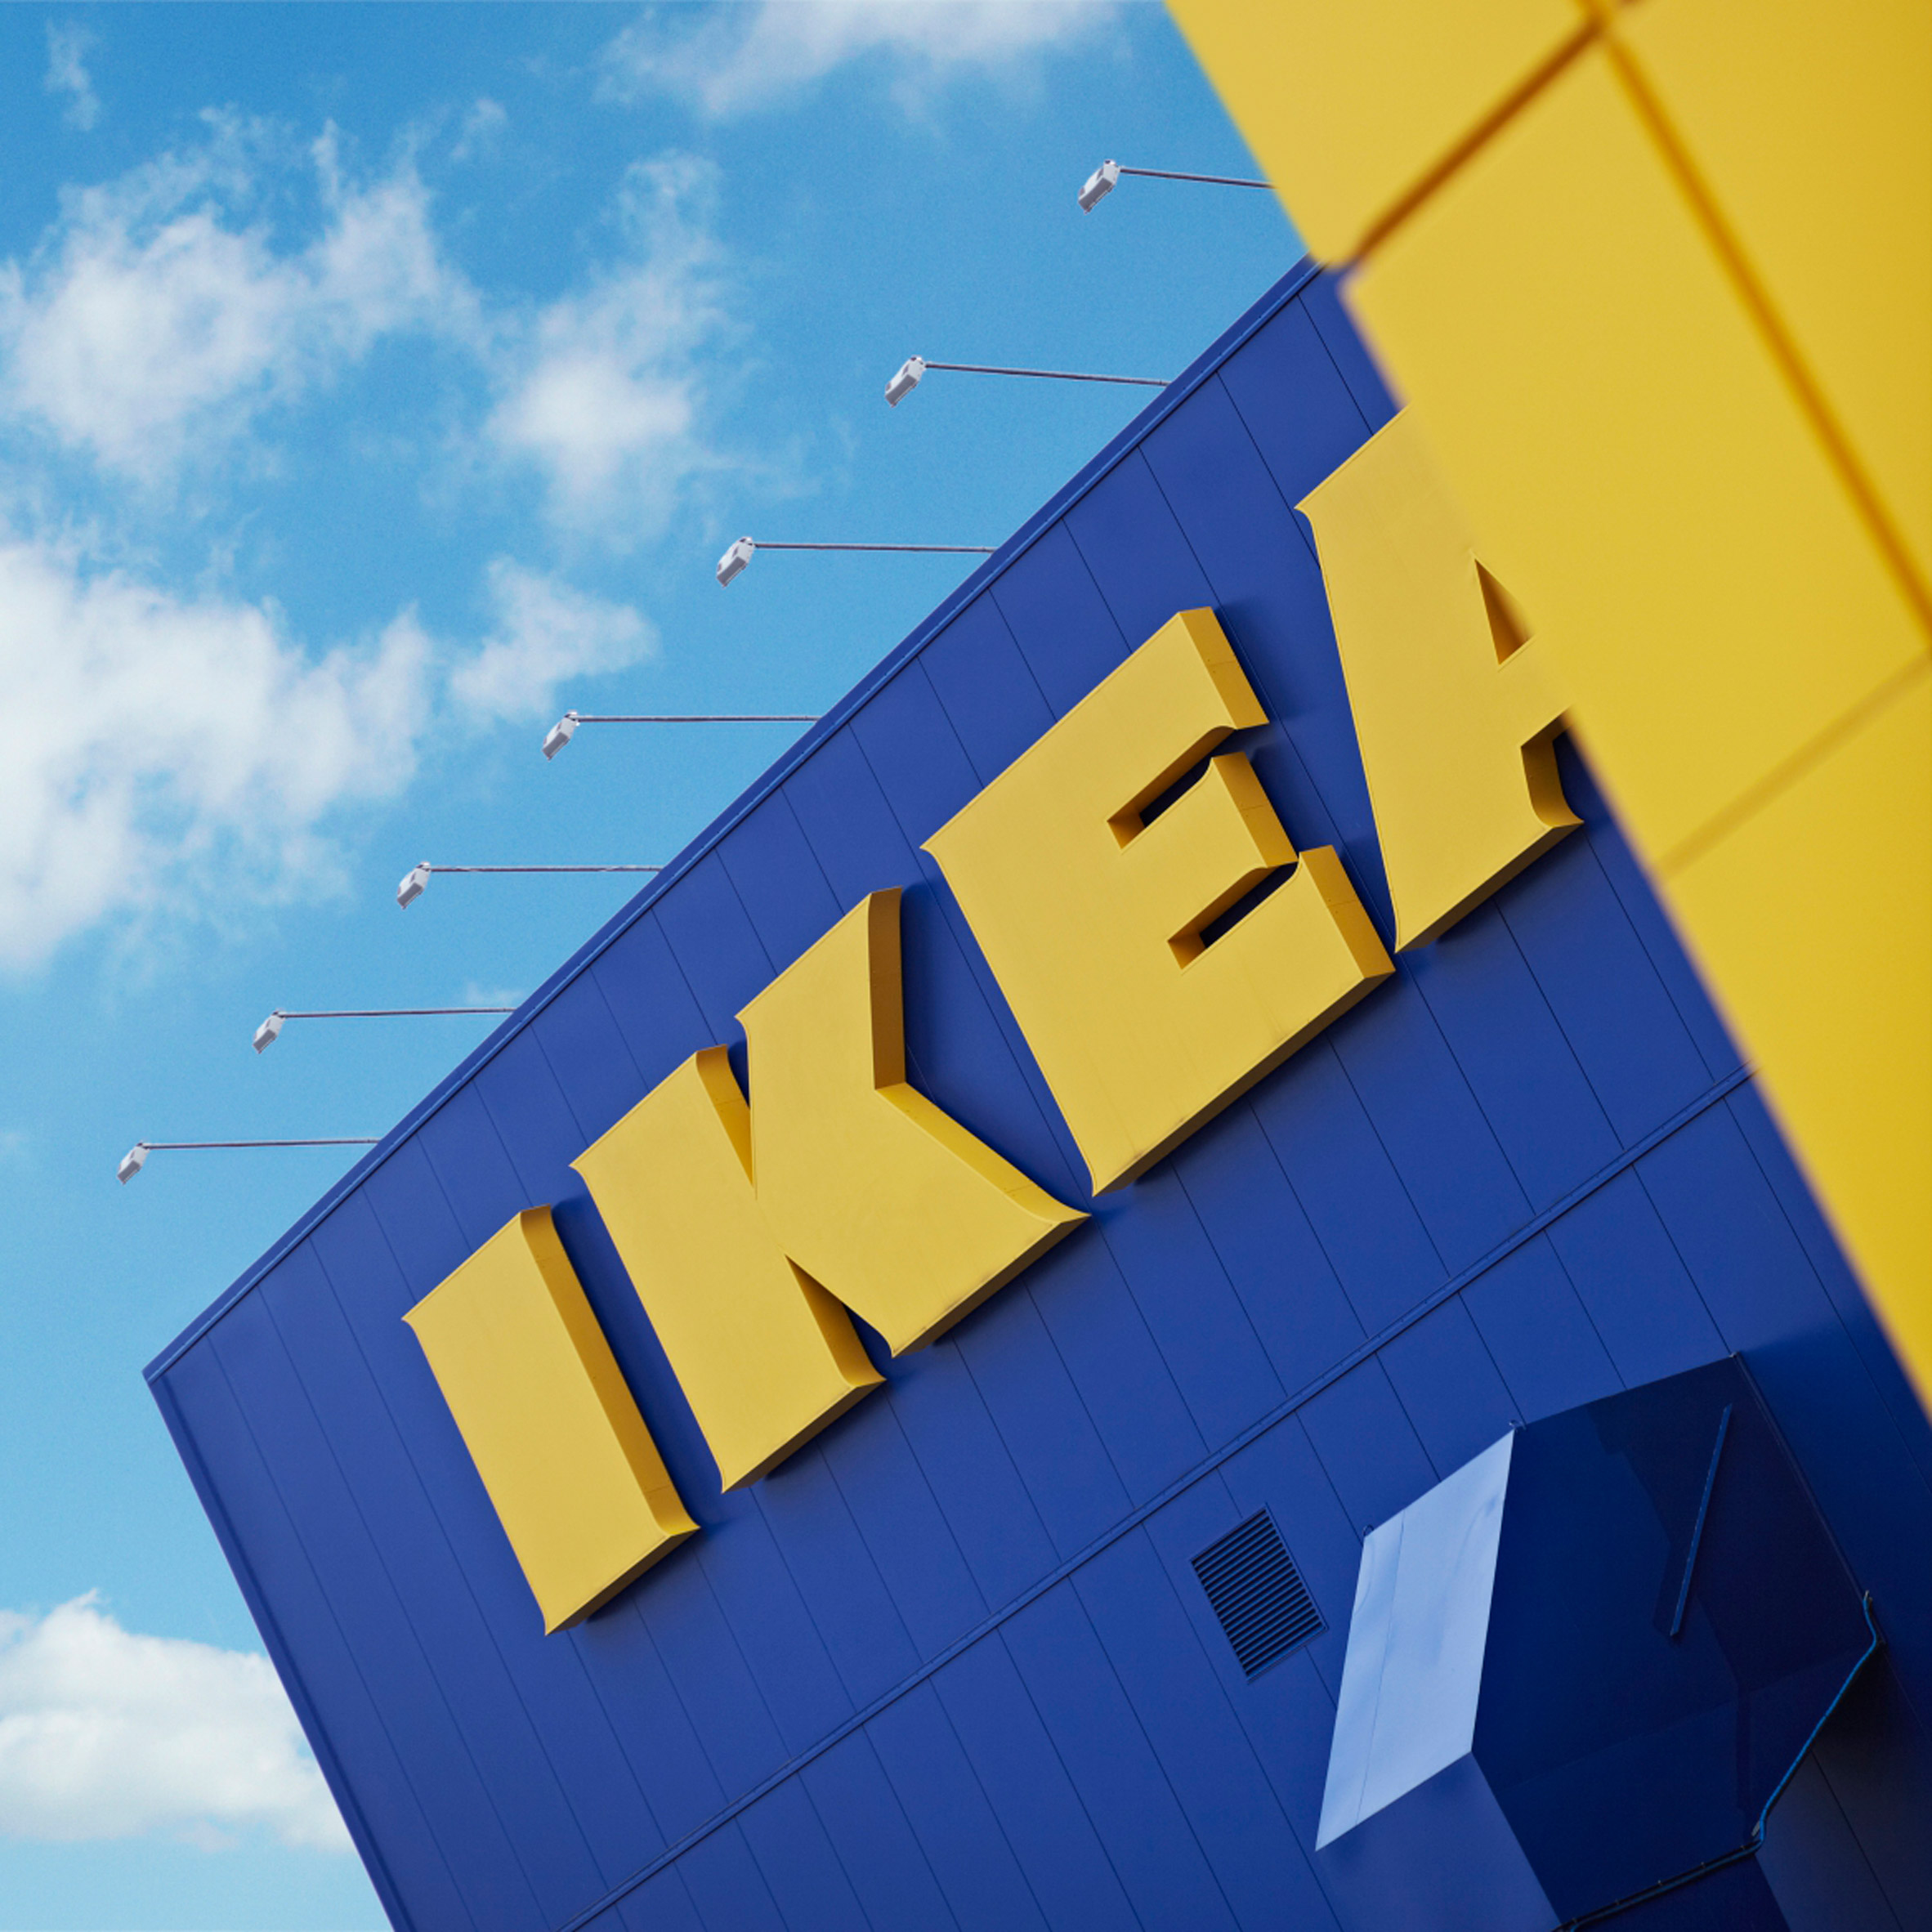 ikea launches buy back initiative for